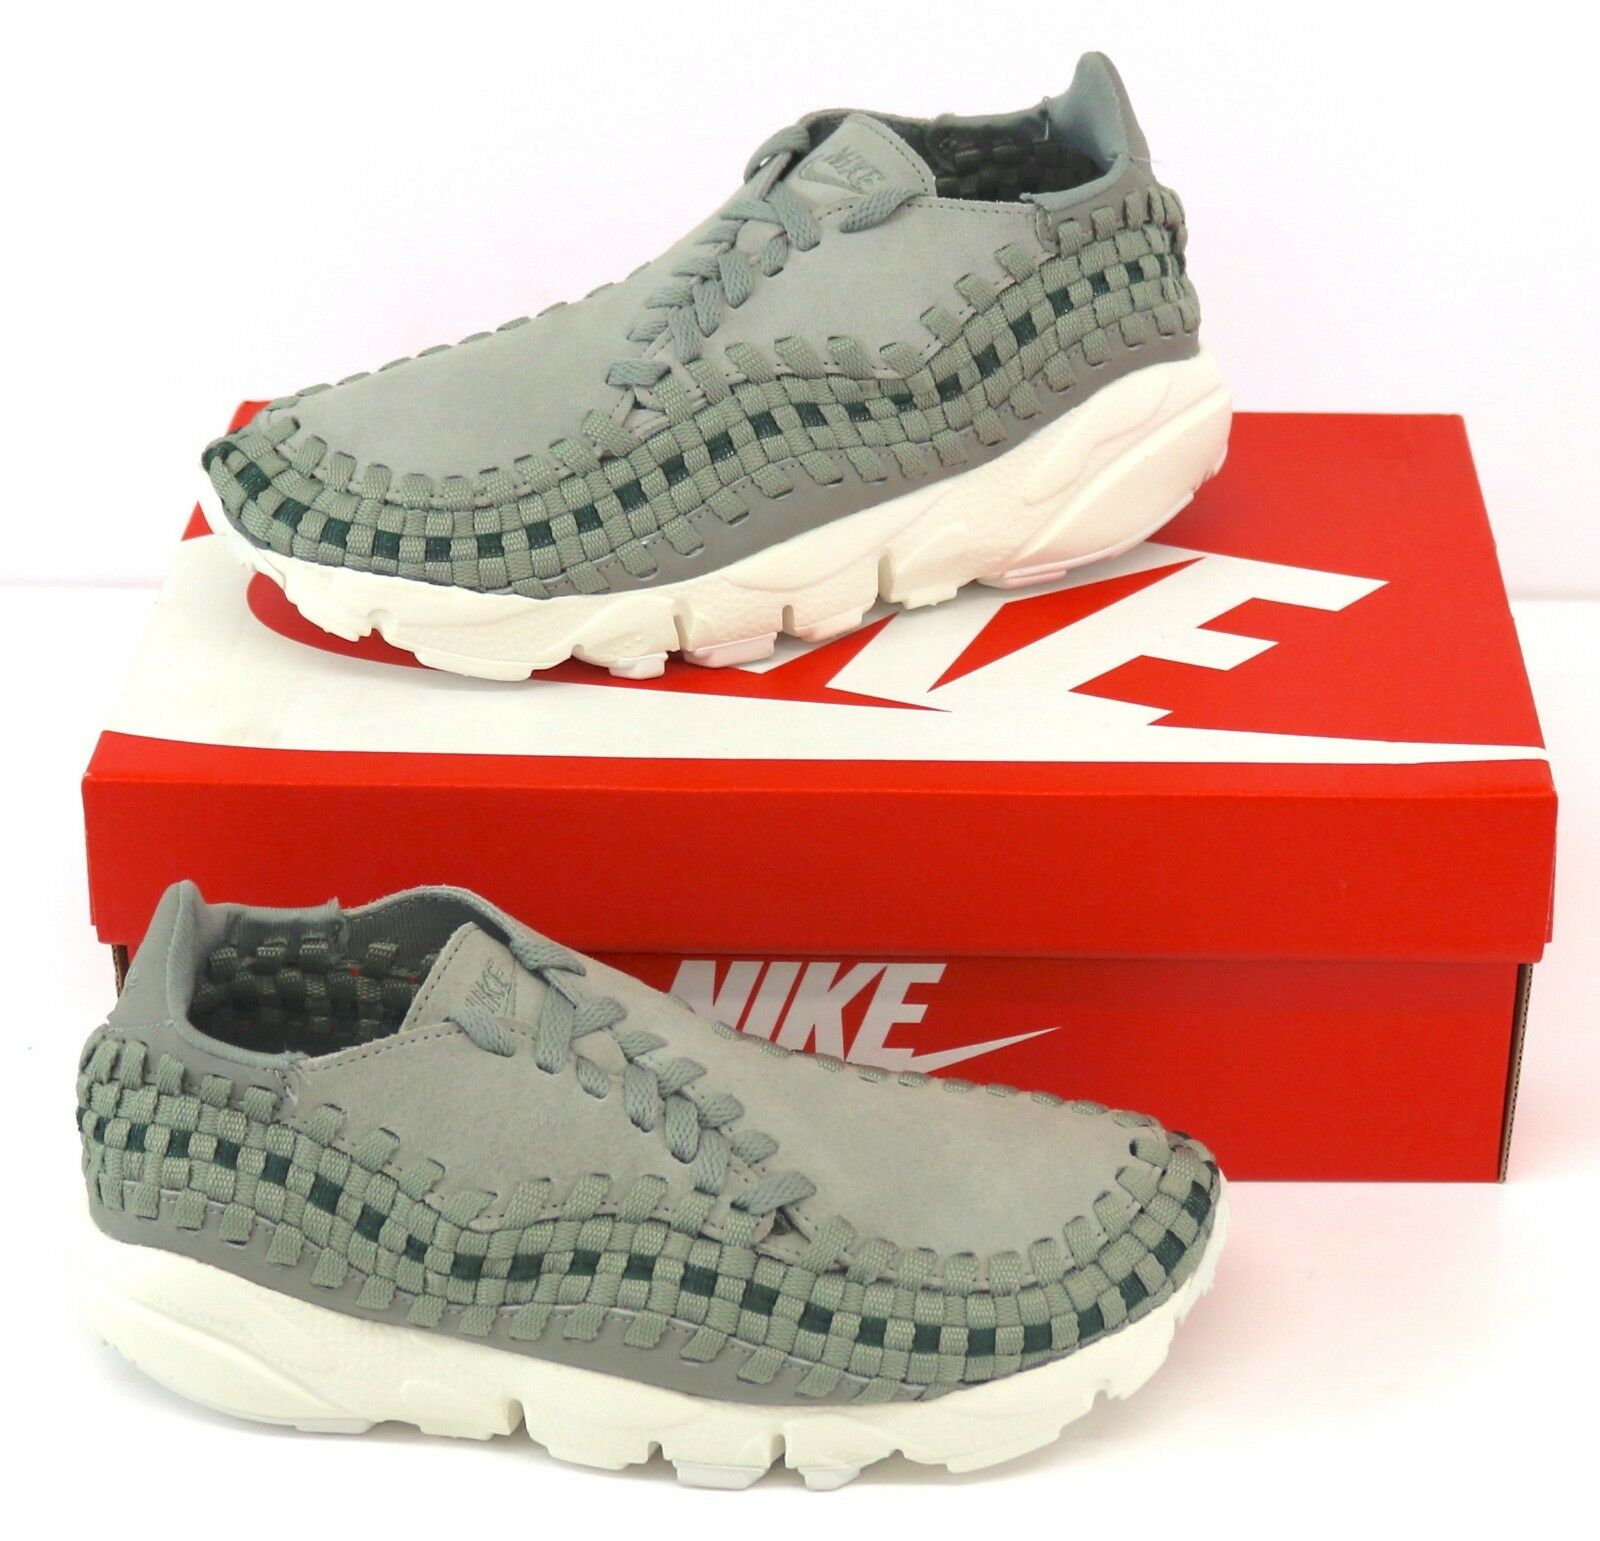 Nike Air Footscape Woven 917698-003 femmes Trainers - Dark Stucco/Sail (Green)